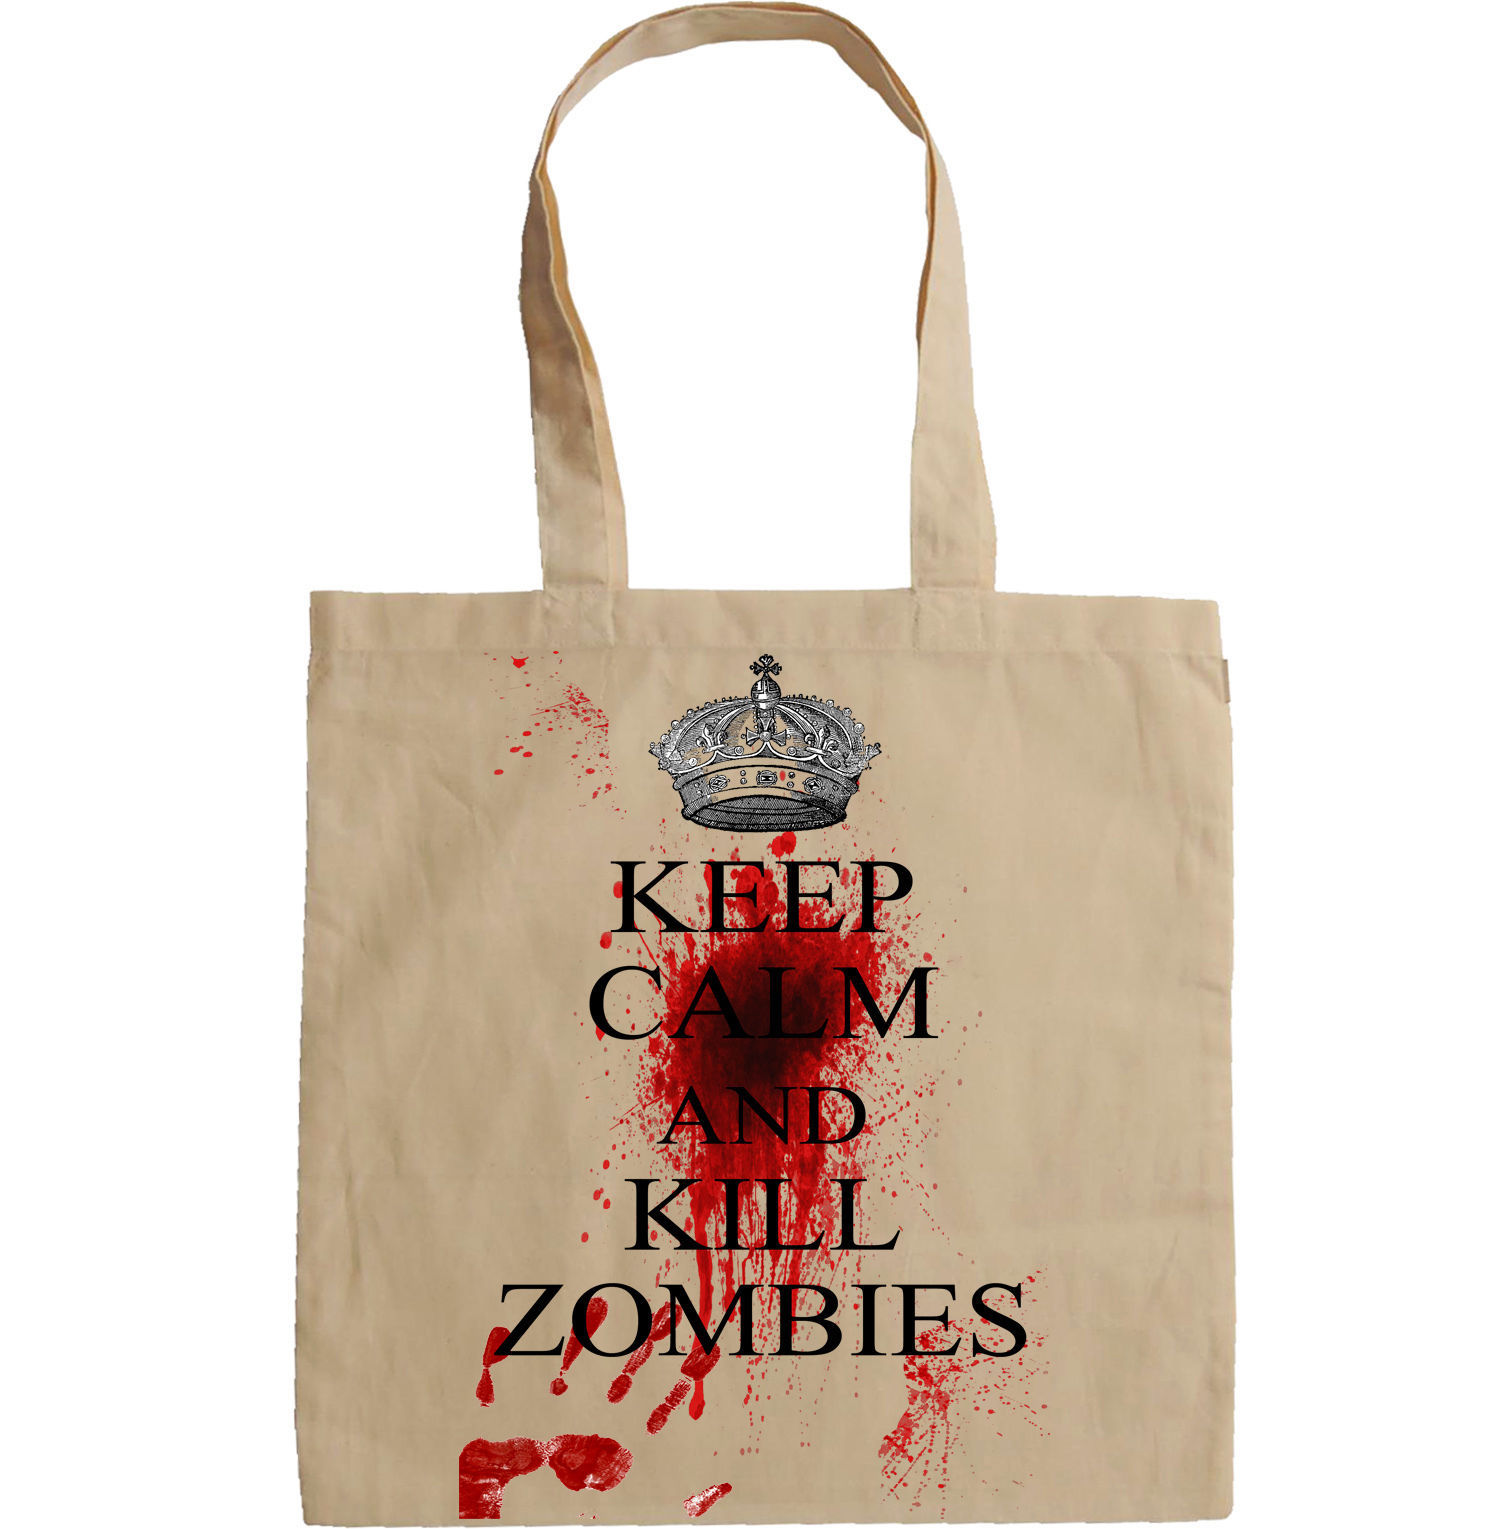 KEEP CALM AND KILL ZOMBIES - NEW AMAZING GRAPHIC HAND BAG/TOTE BAG